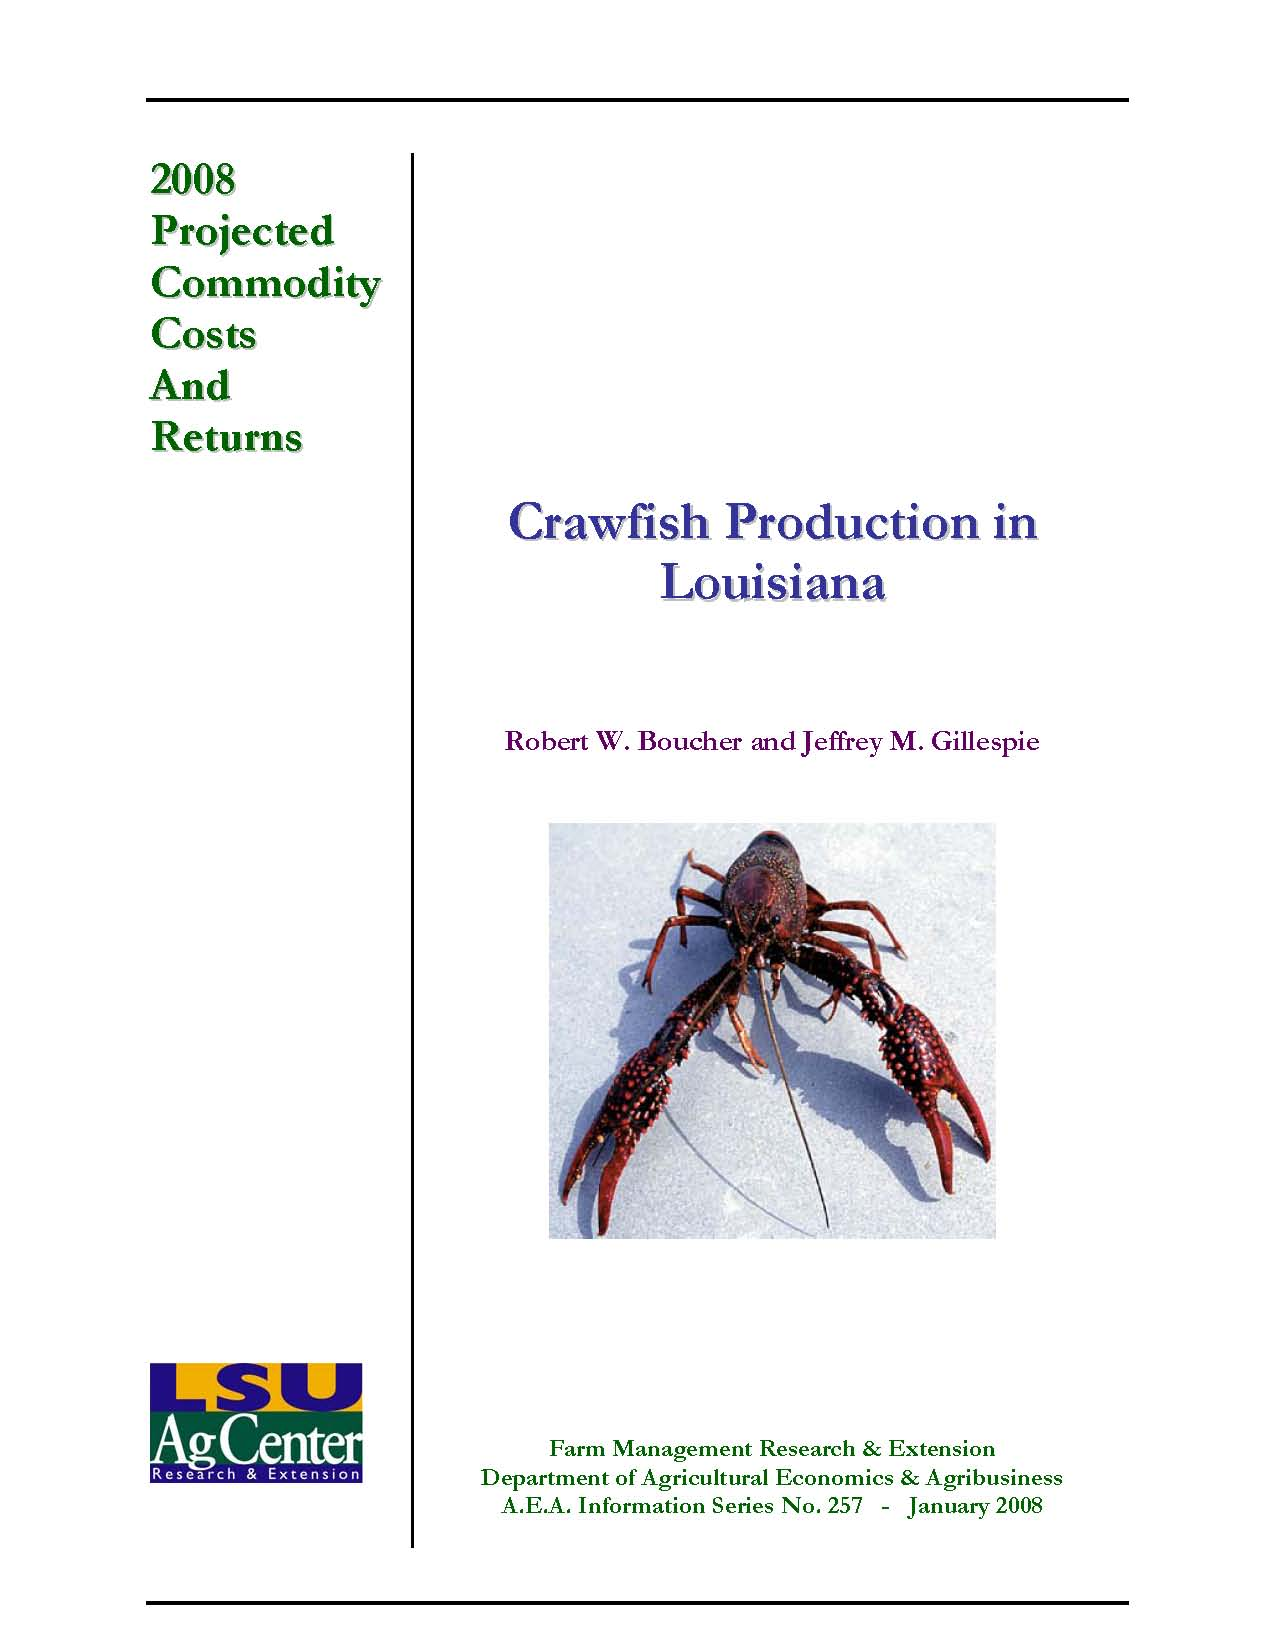 2008 Projected Crawfish Production Costs